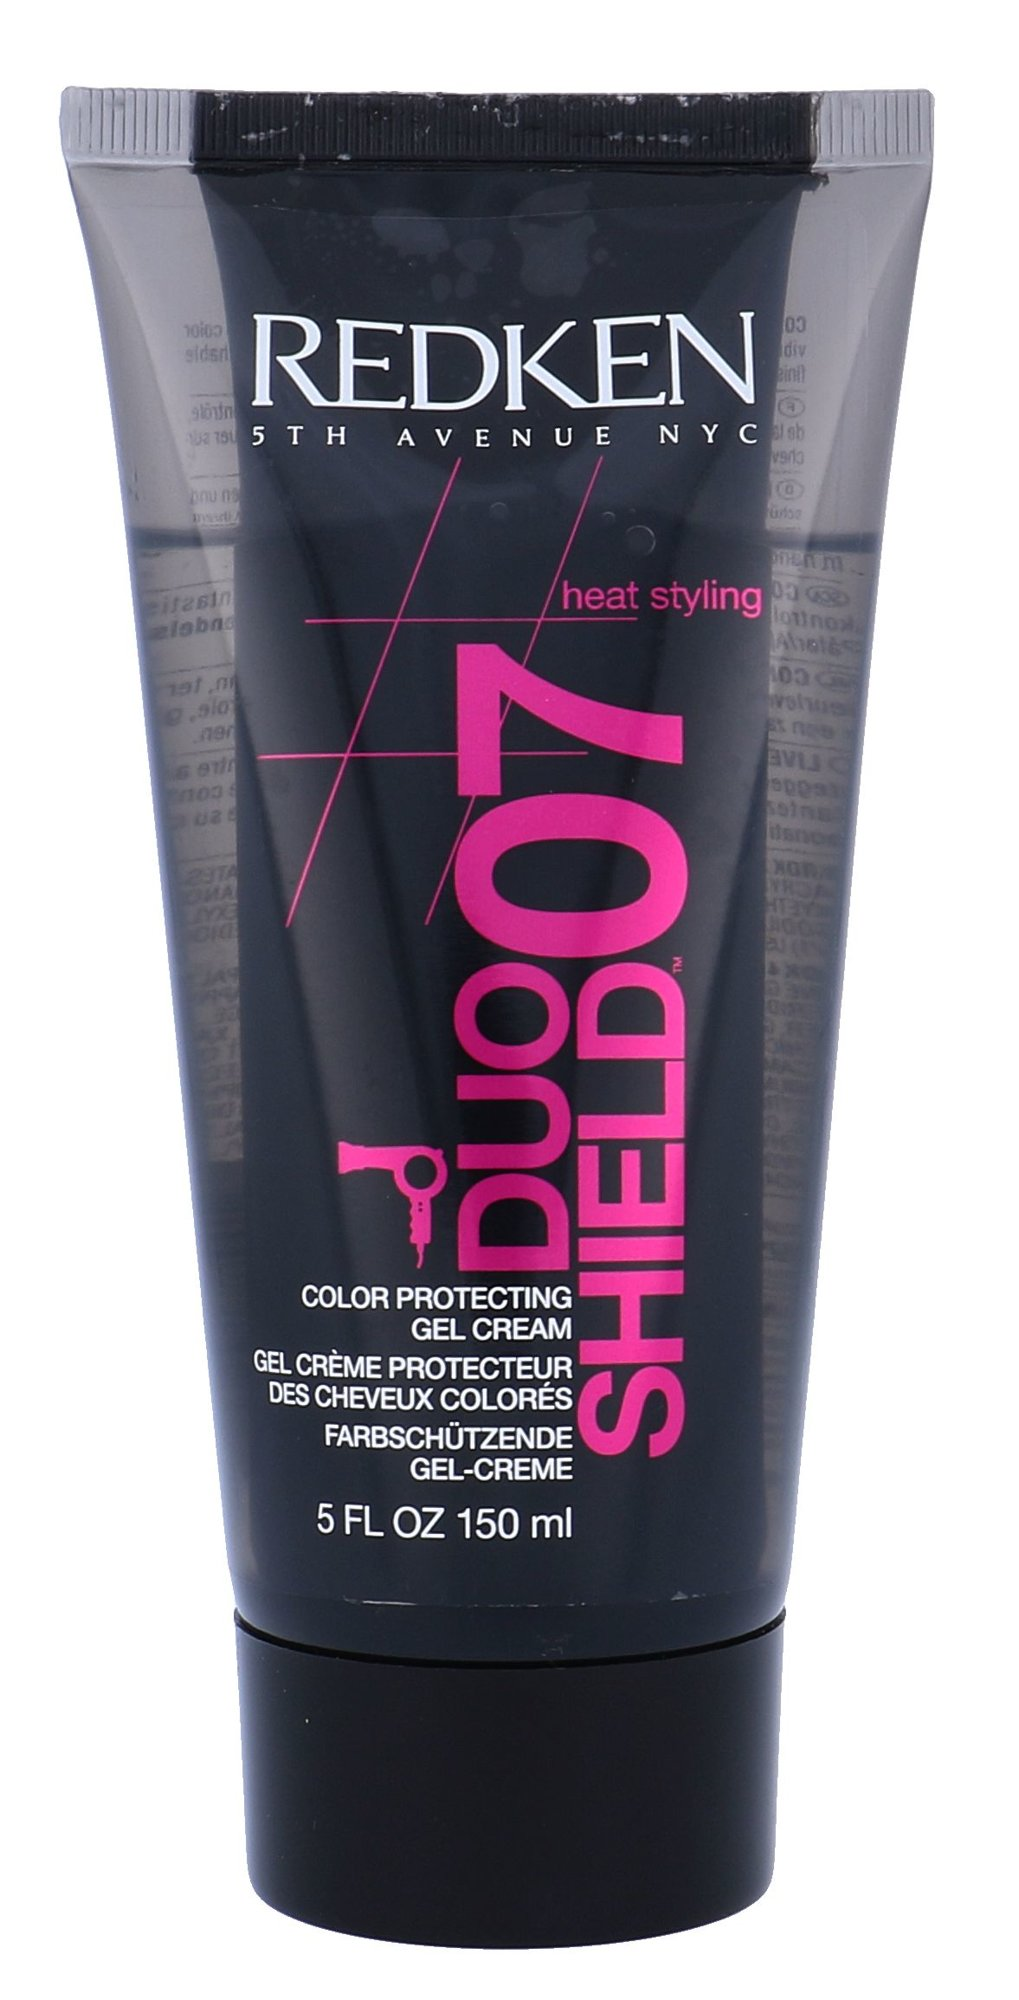 Redken Duo Shield 07 Cosmetic 150ml